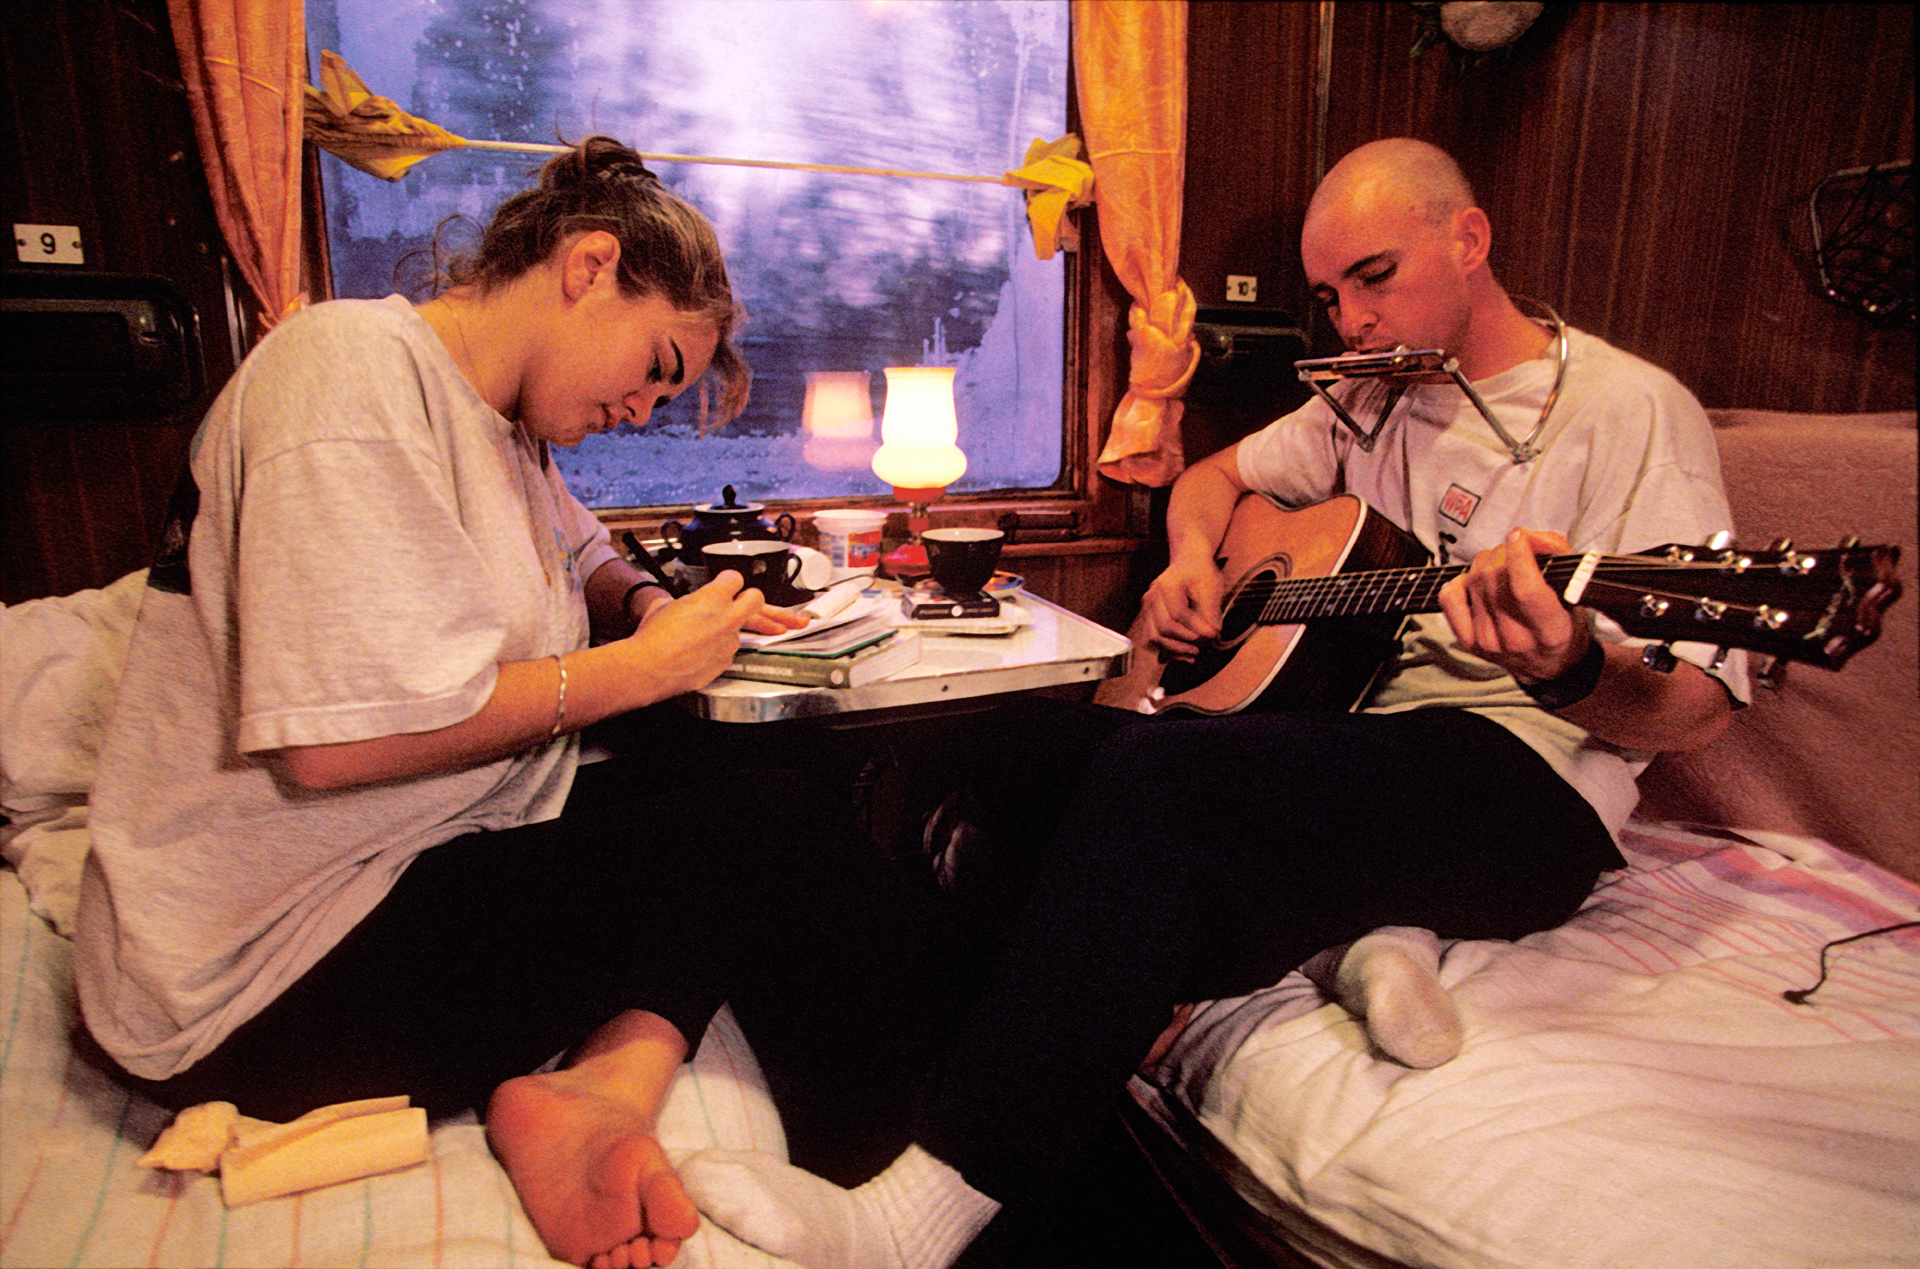 Anna and Peter, 2 young world travelers from Western Australia, spend their evening writing letters and playing guitar from their two-person compartment on the Trans-Siberian Railroad.  Perm, Russia